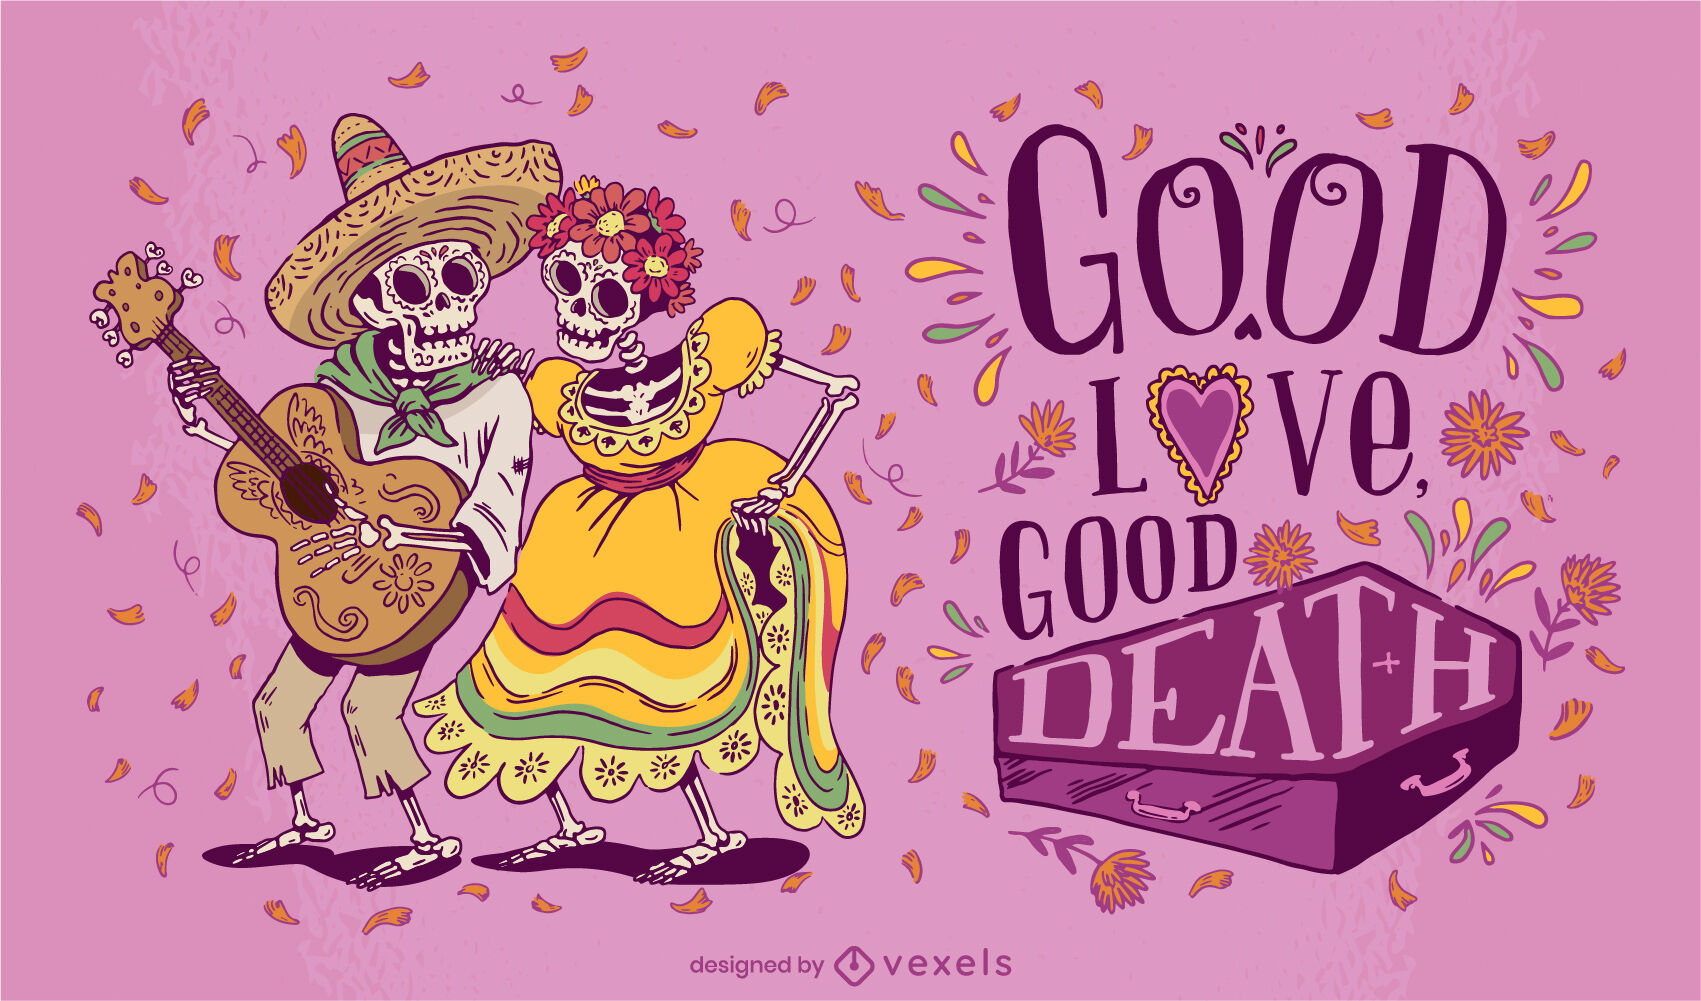 Day of the dead skeleton couple illustration